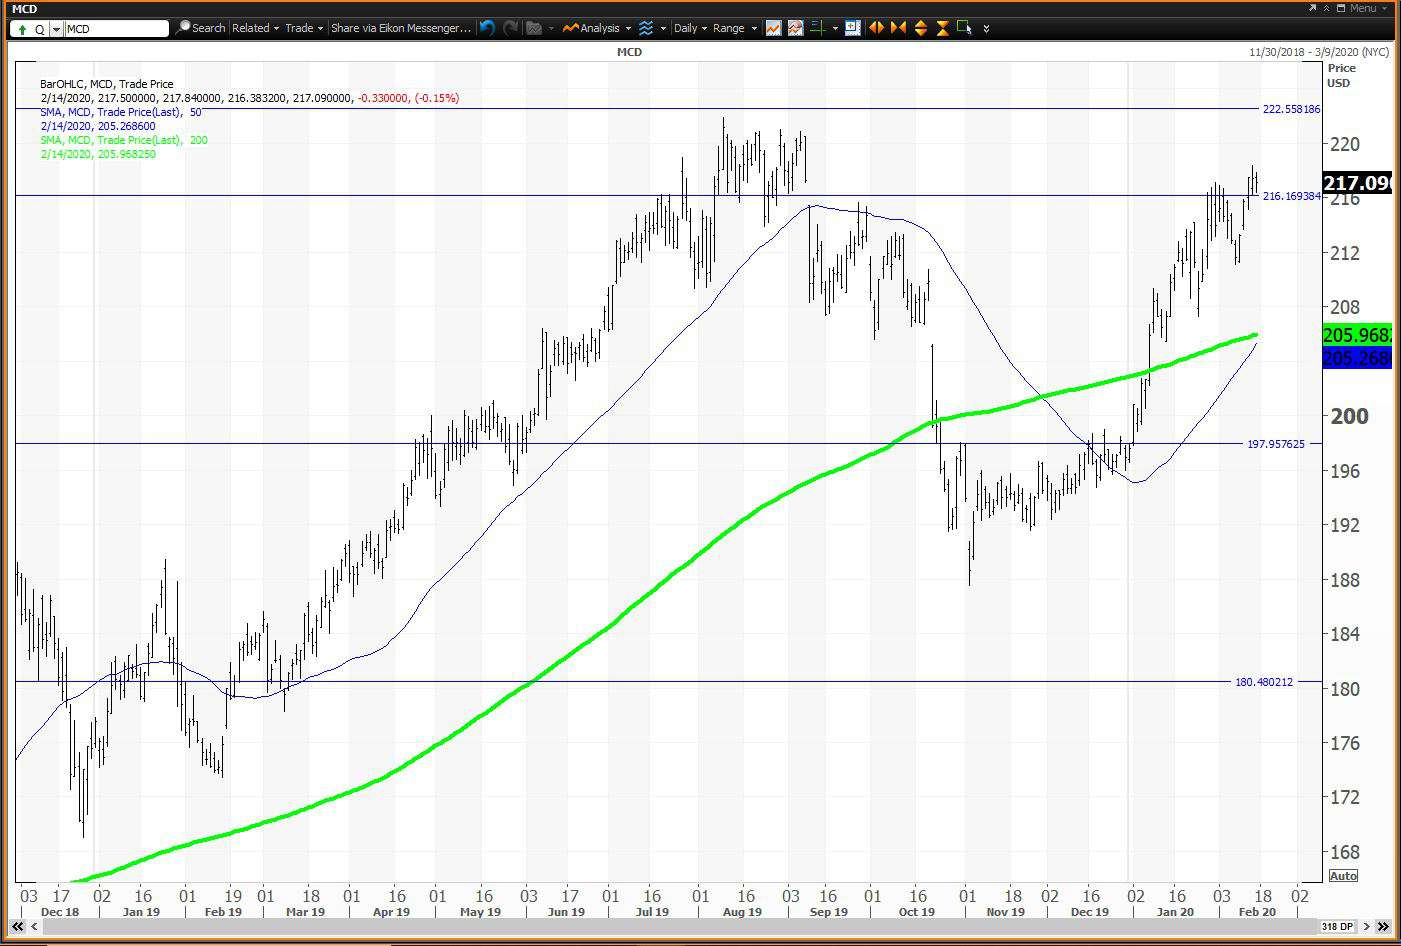 Daily chart showing the share price performance of McDonald's Corporation (MCD)